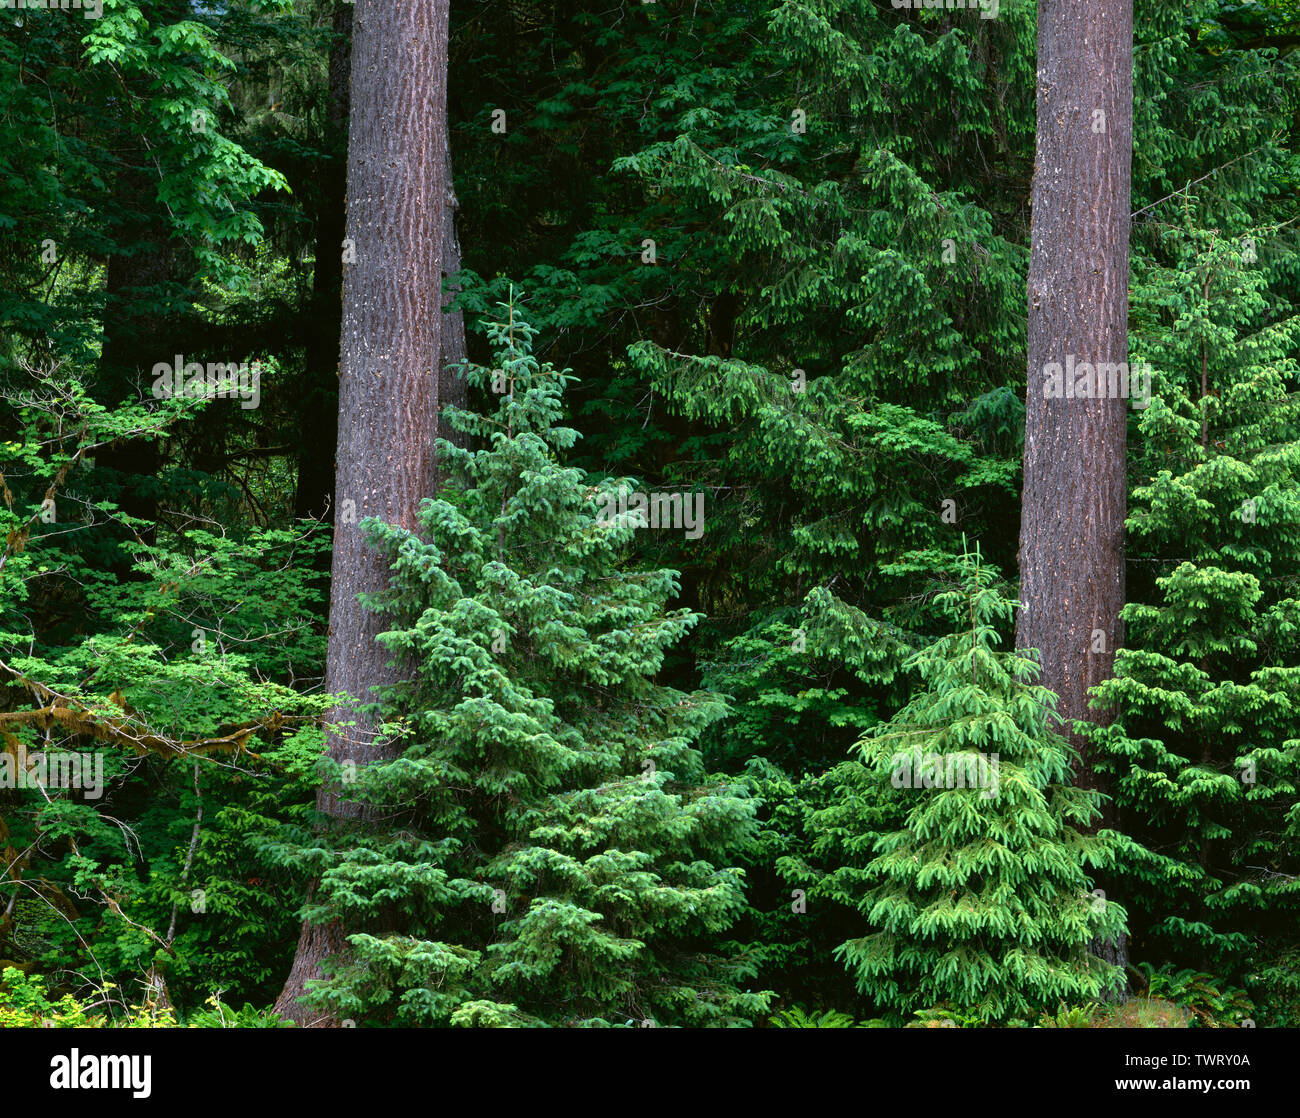 USA, Washington, Olympic National Park, Conifers and maples grow along edge of forest next to the Hoh River, Hoh Valley. - Stock Image